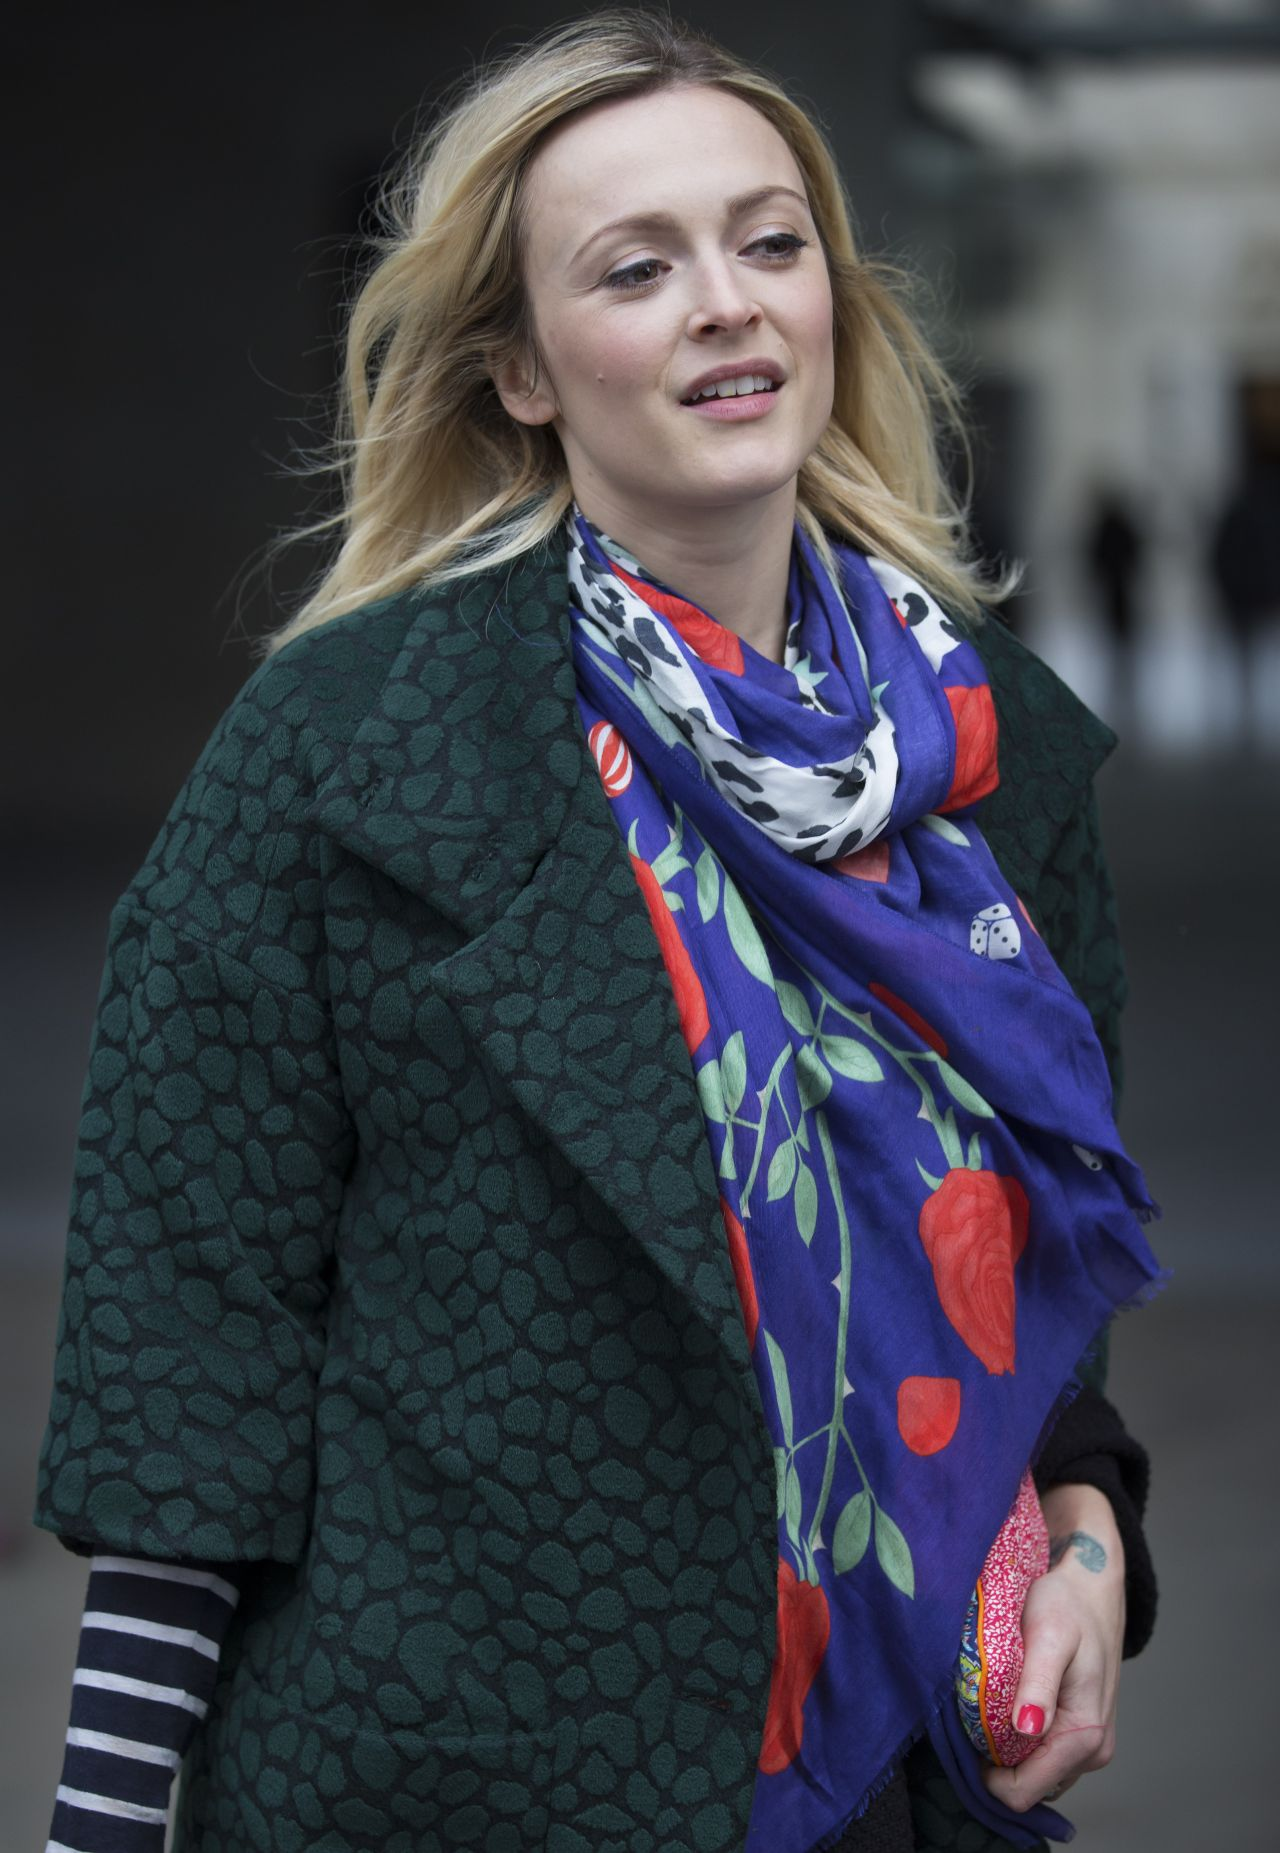 Fearne Cotton Leaving The Bbc Radio 1 Studios In London